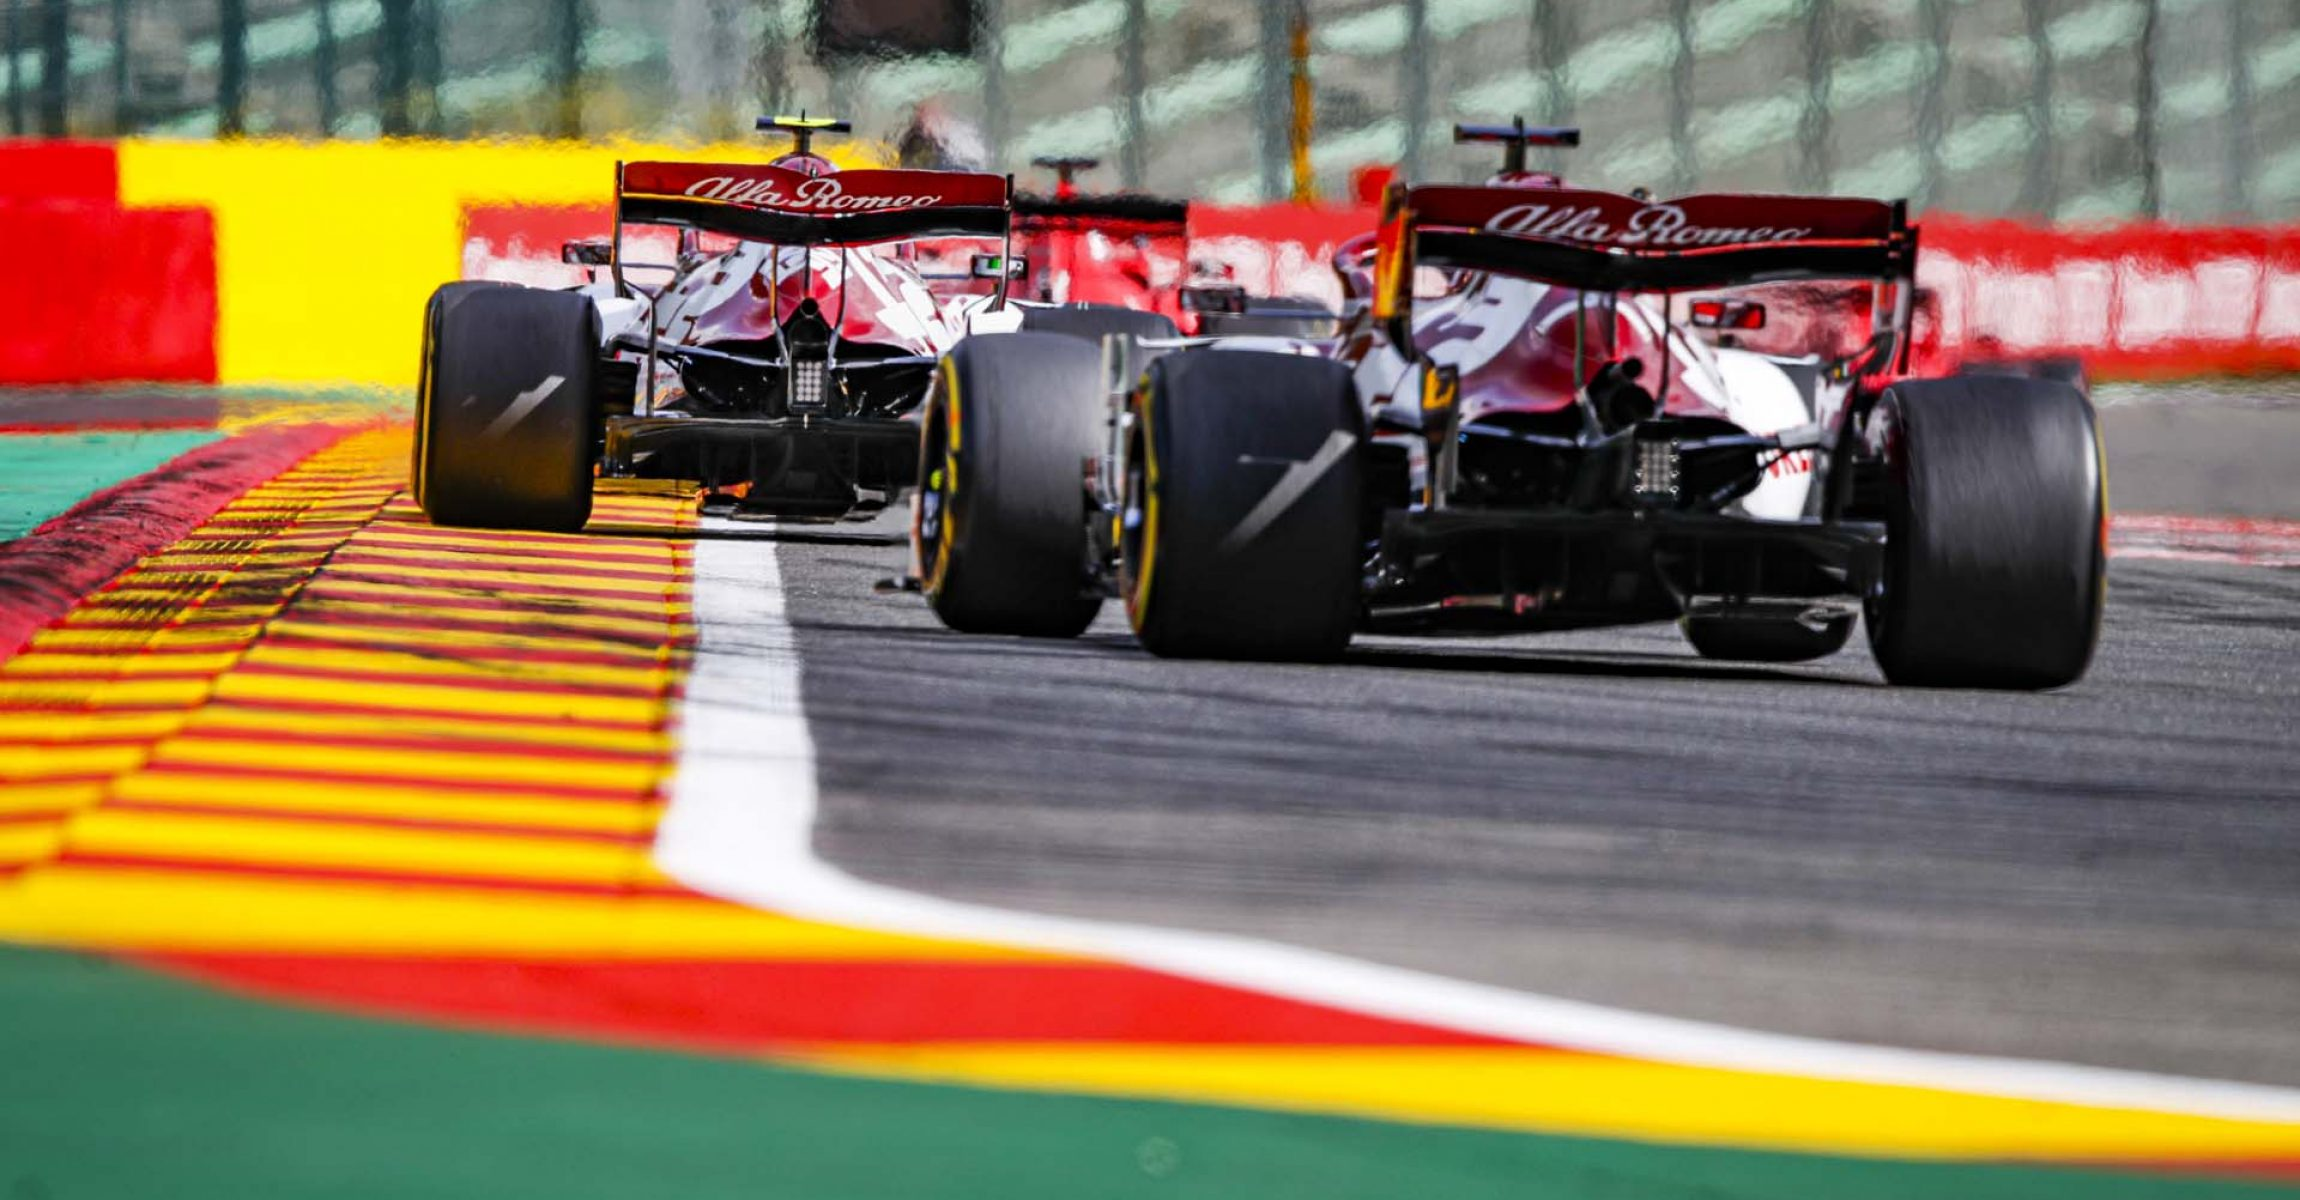 99 GIOVINAZZI Antonio (ita), Alfa Romeo Racing ORLEN C39, 07 RAIKKONEN Kimi (fin), Alfa Romeo Racing ORLEN C39, action during the Formula 1 Rolex Belgian Grand Prix 2020, from August 28 to 30, 2020 on the Circuit de Spa-Francorchamps, in Stavelot, near Liège, Belgium - Photo Florent Gooden / DPPI